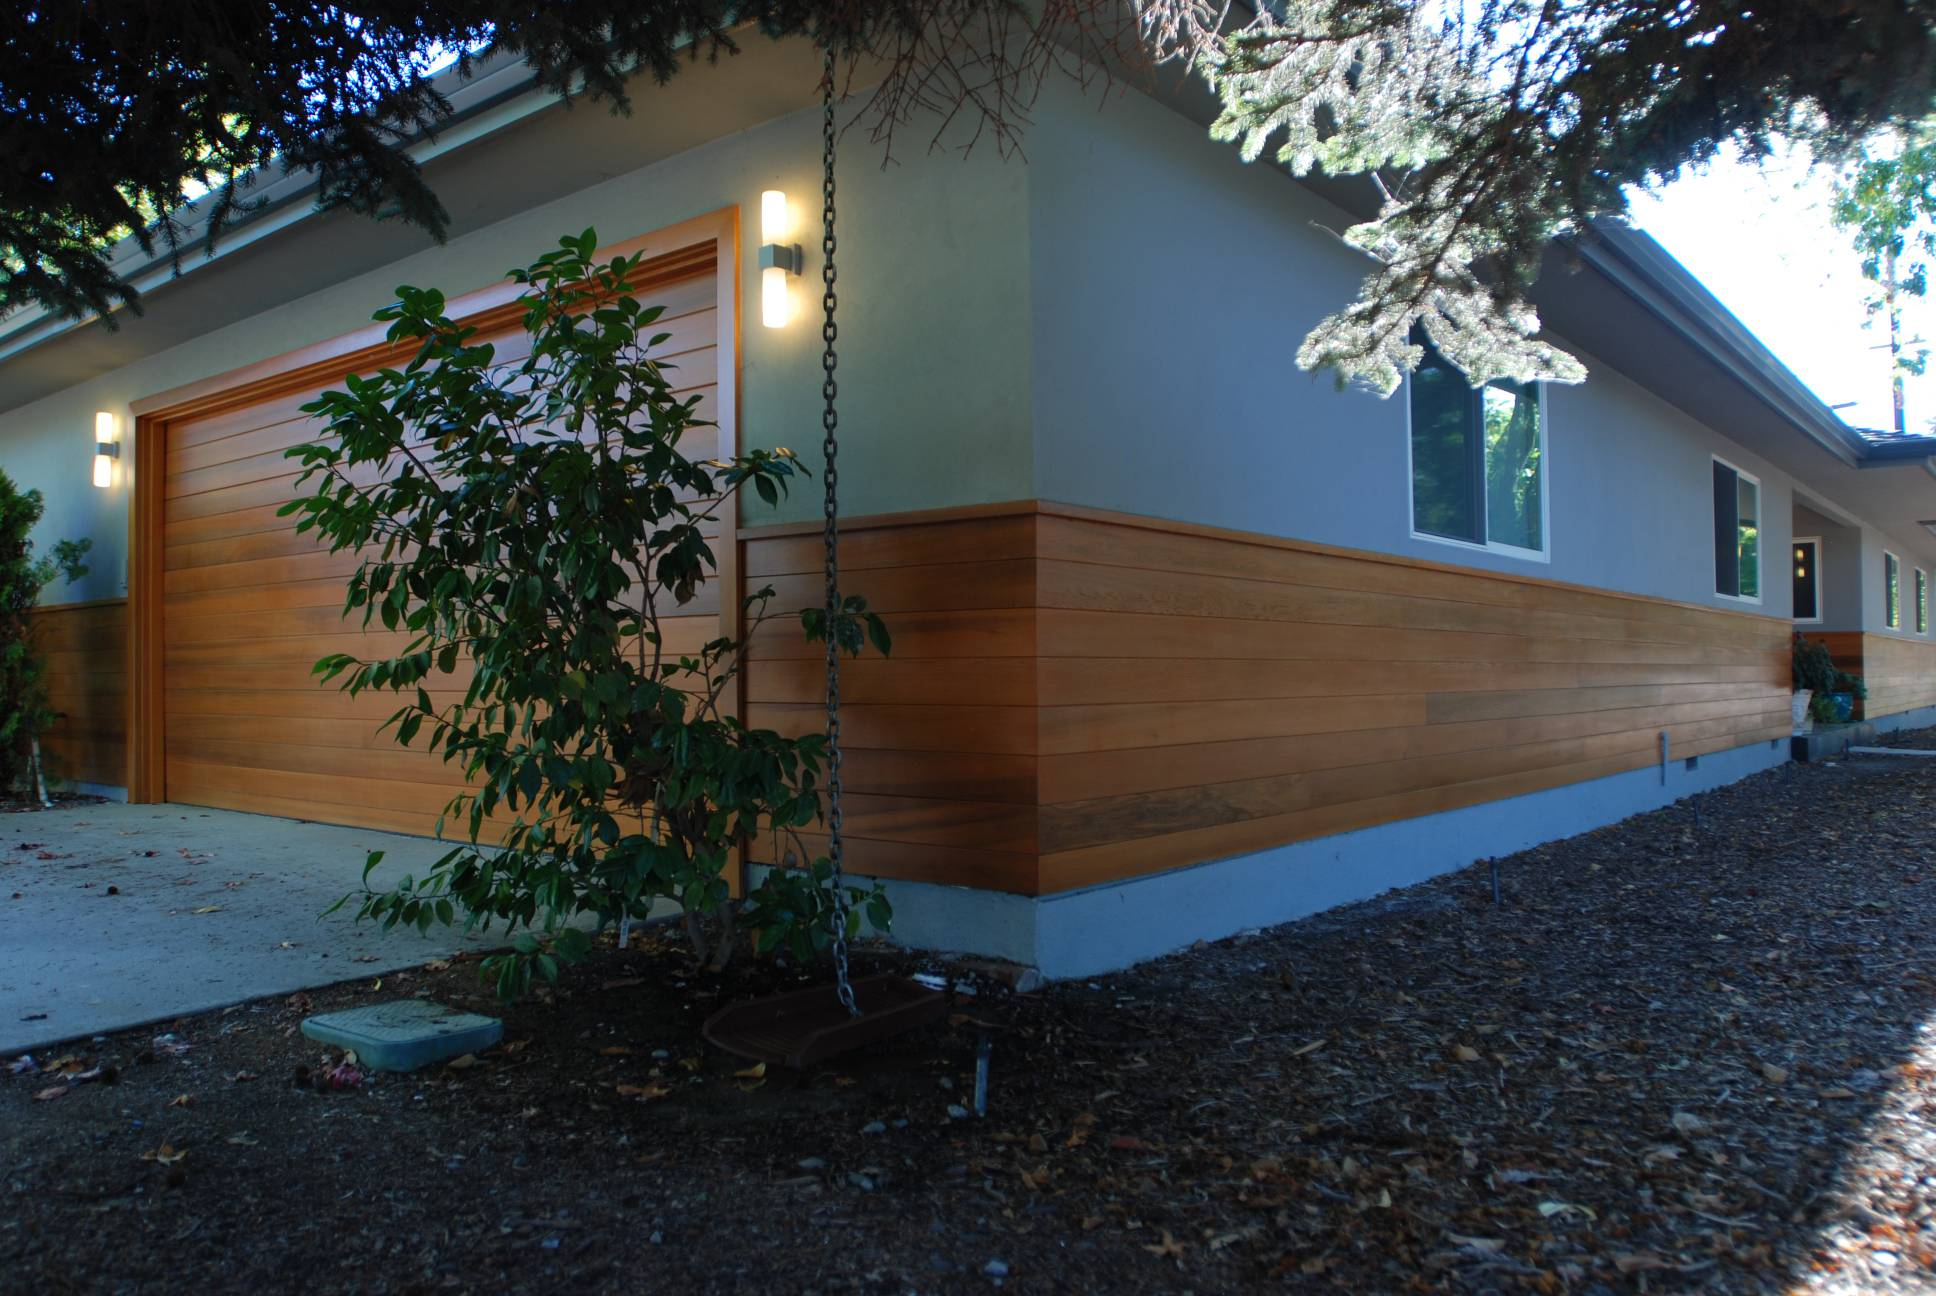 Exterior wood facade, Exterior design work, Architect work, Menlo Park